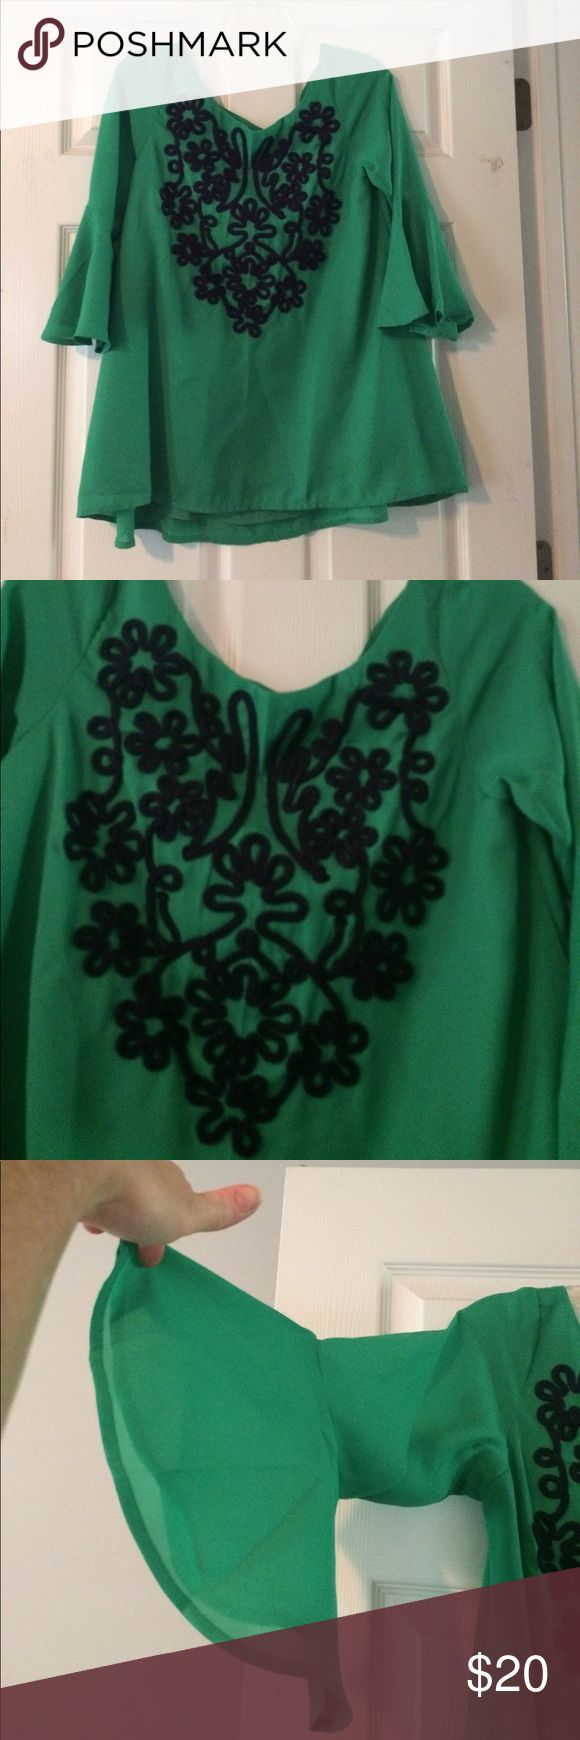 Judith March shirt Green Judith March shirt with blue flower detail.   100% polyester.  Shirt is lined. Judith March Tops Blouses